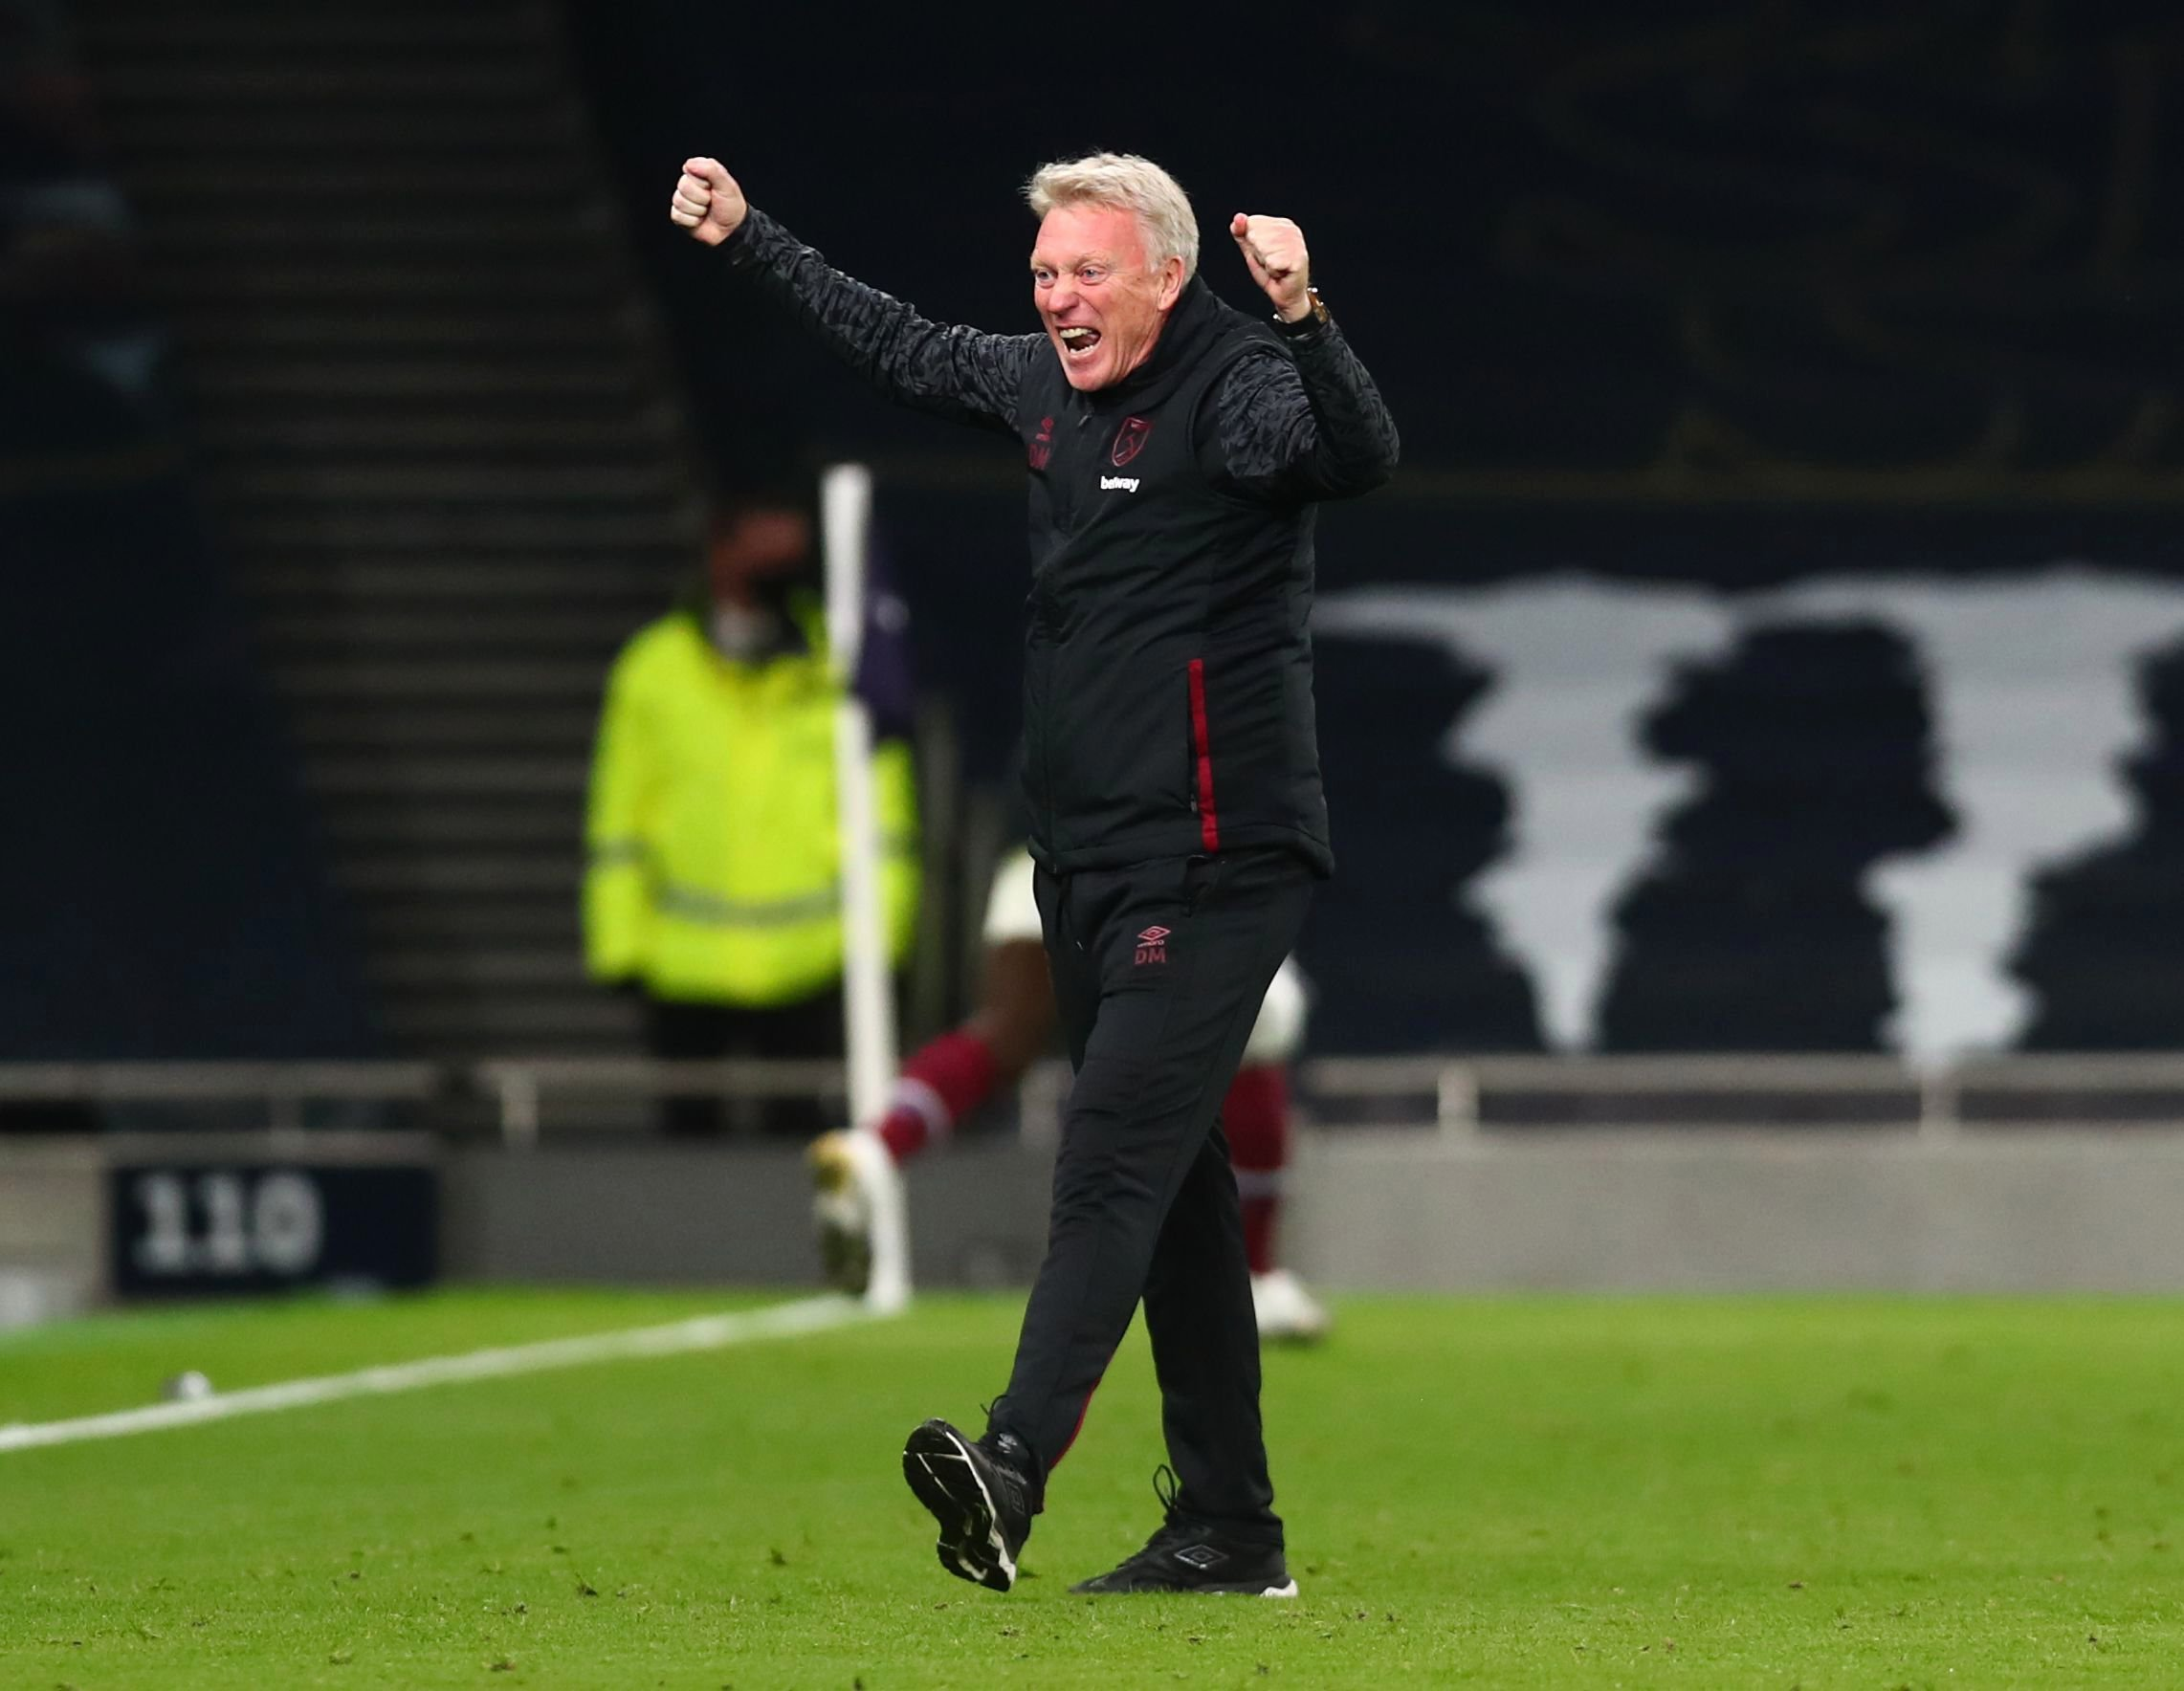 Rennie also believes Moyes should be given a long-term contract at West Ham